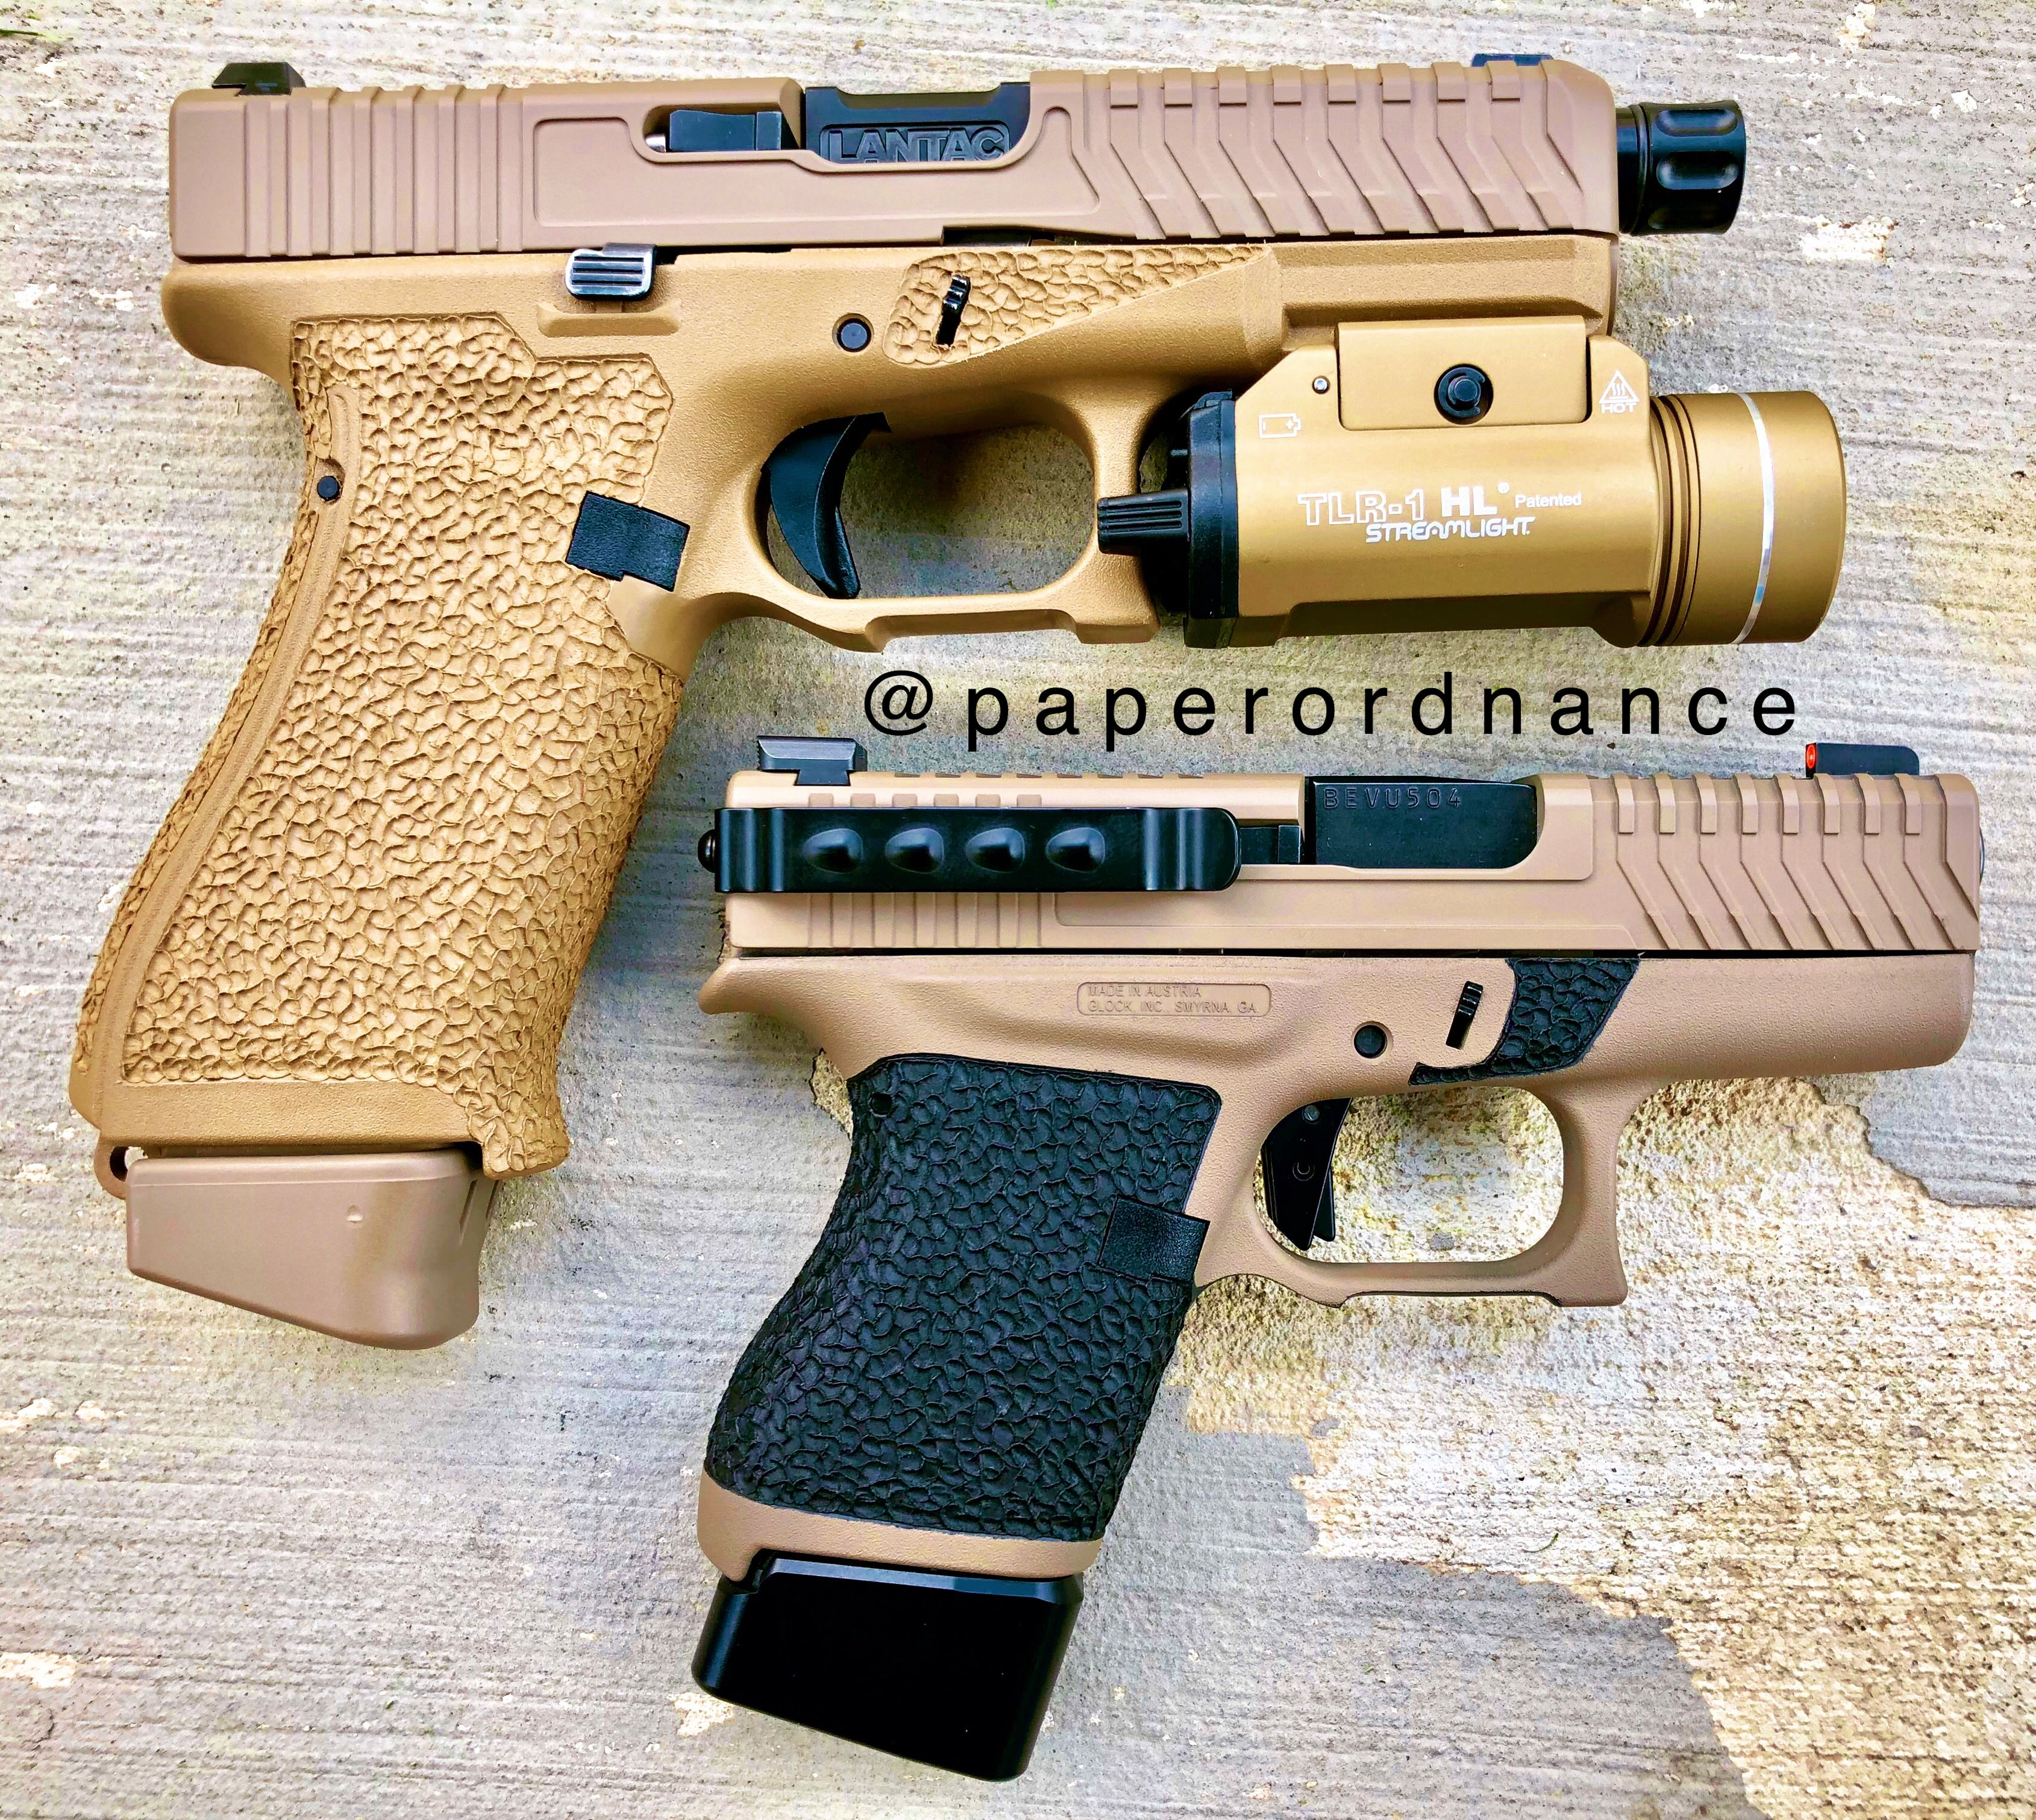 Lovely FDE Glock 19x and Glock 43 with some amazing stipple work